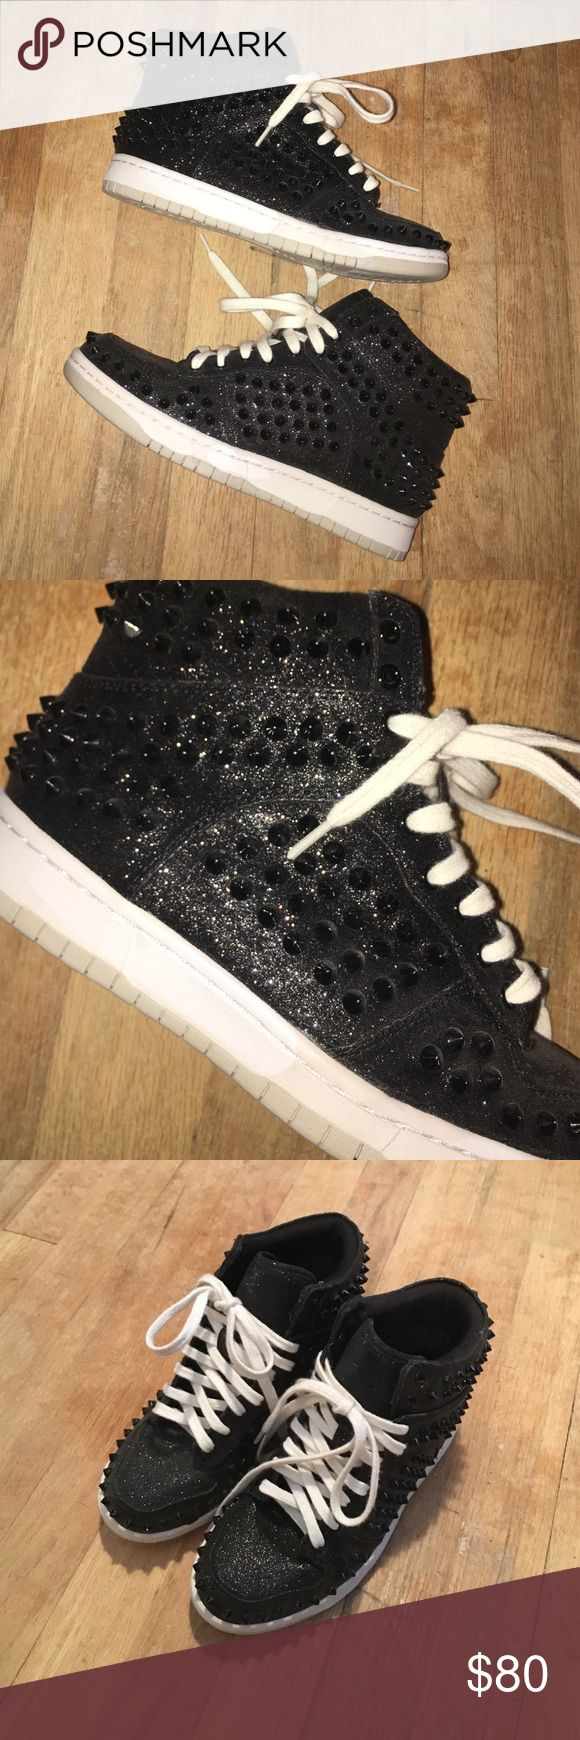 Steve Madden studded sneakers black glitter Steve Madden studded sneakers black glitter NEVER WORN! Brand new glitter and sparkles, pictures do not do justice how gorgeous these are! Steve Madden Shoes Sneakers